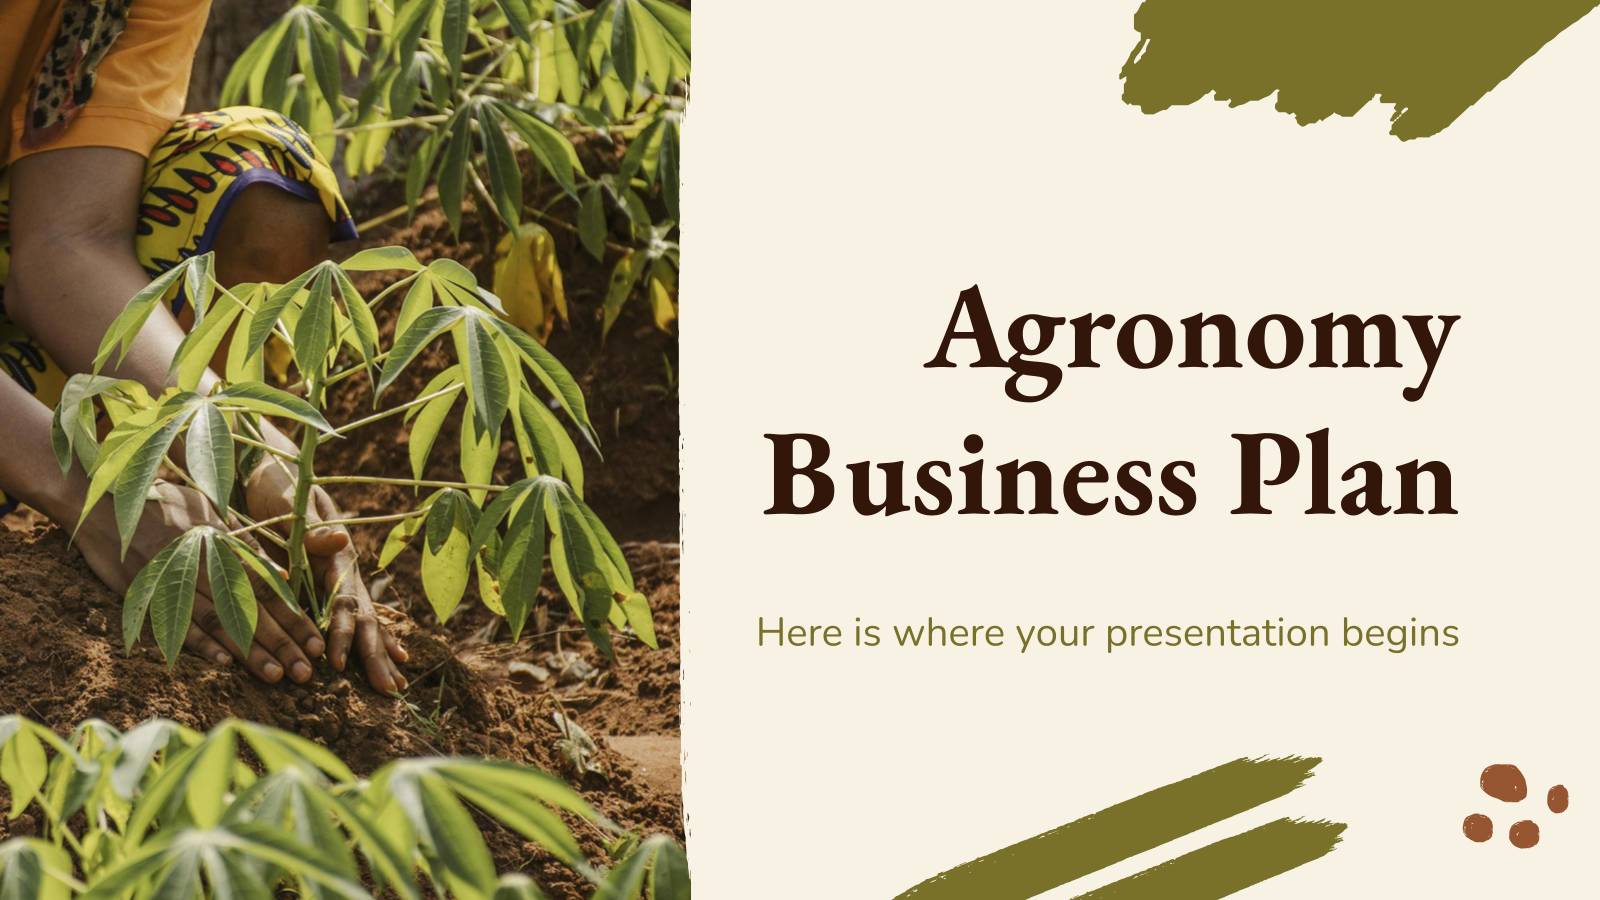 Agronomy Business Plan presentation template